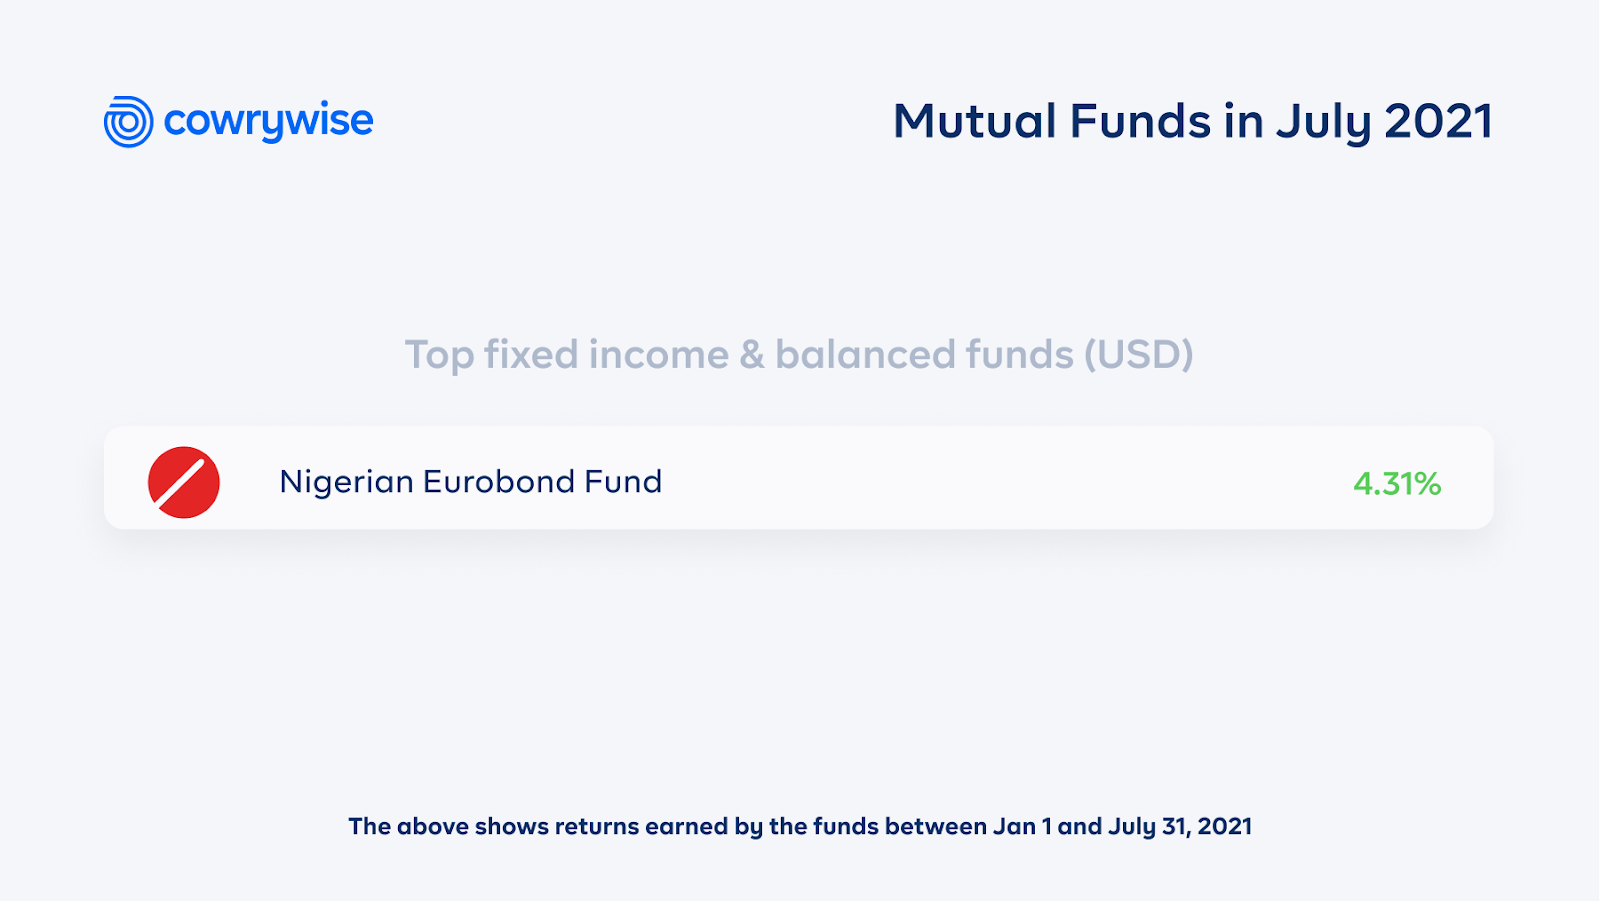 top fixed income and balanced funds (USD) in July 2021